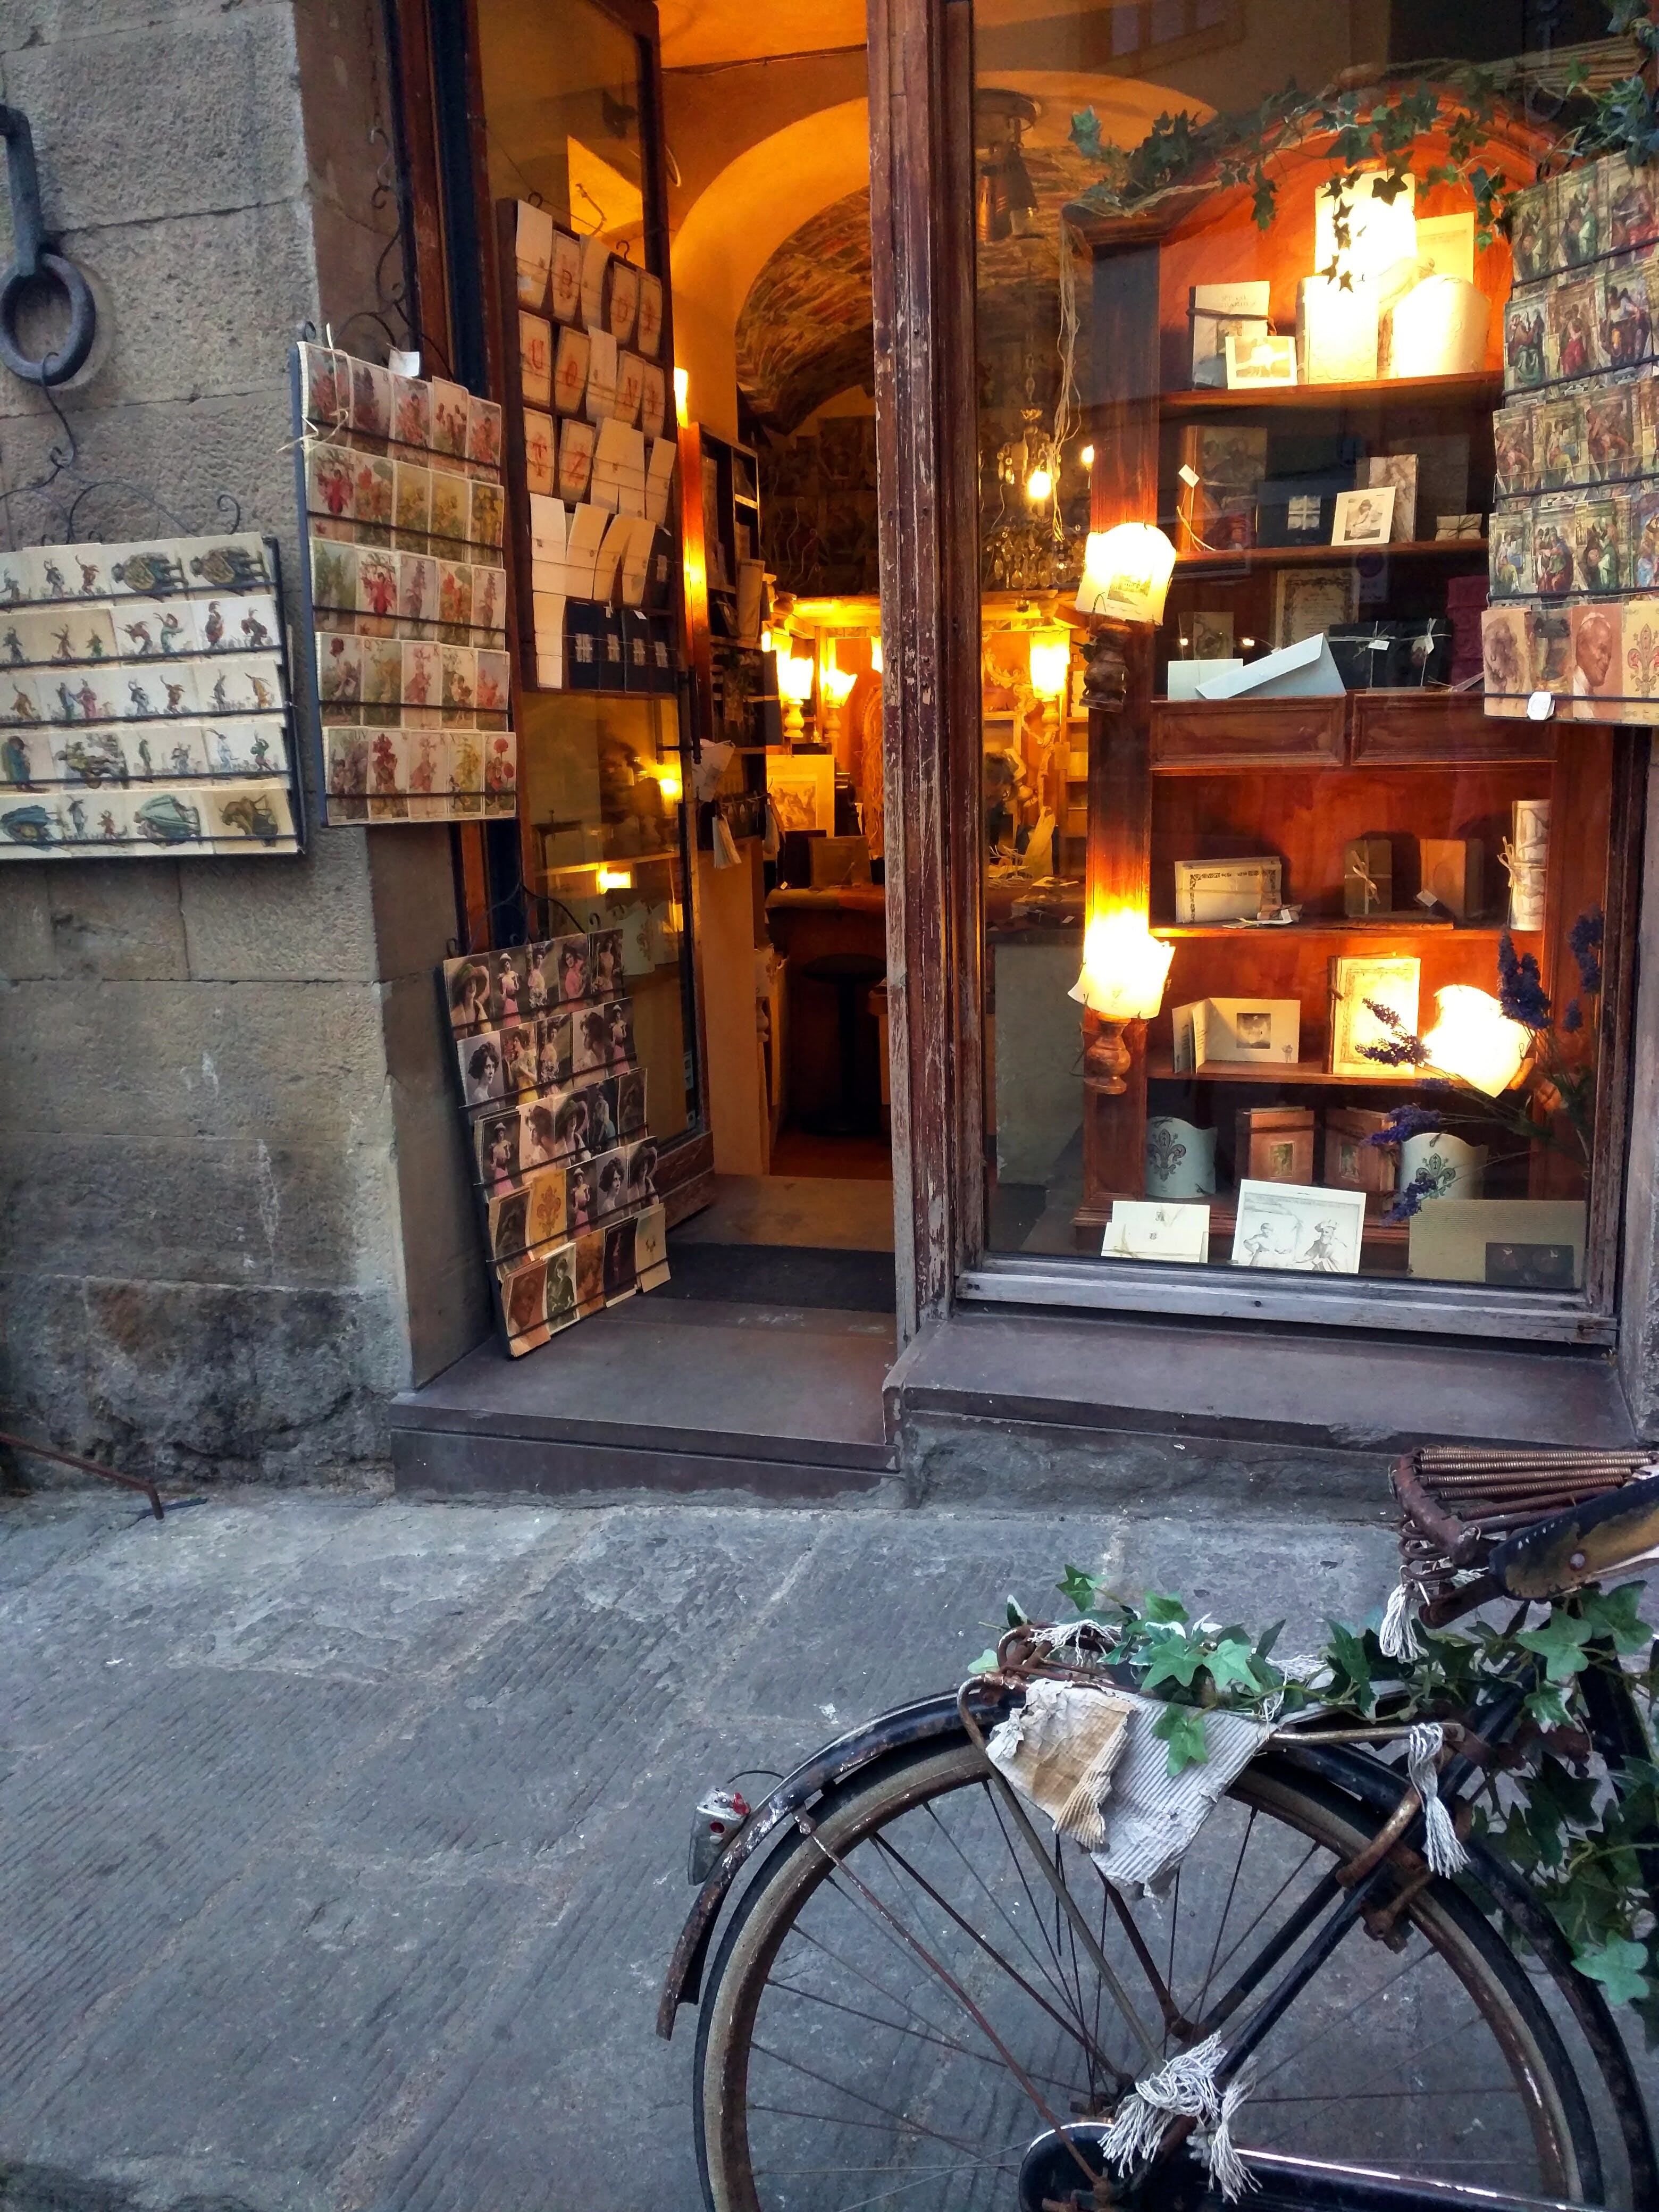 Free stock photo of bicycle, boutique, italy, lights